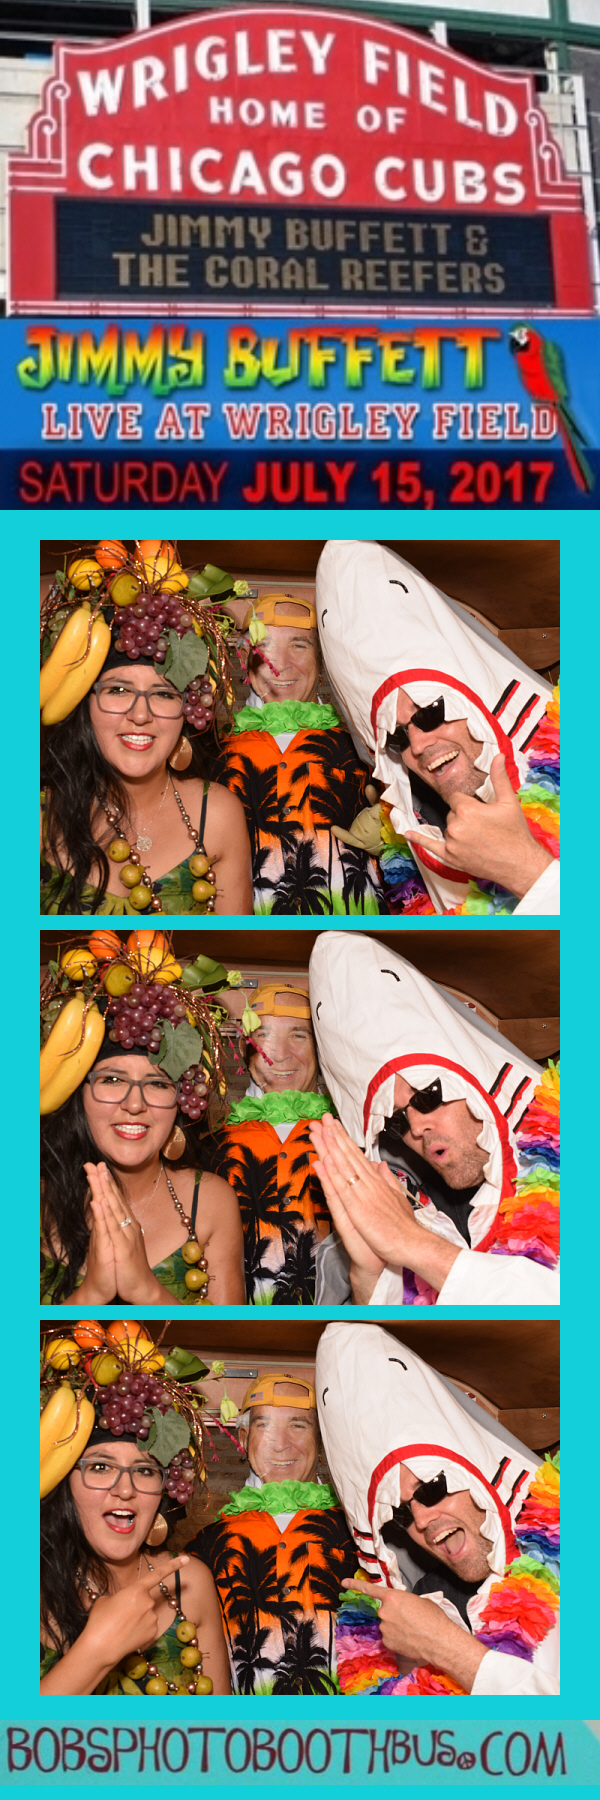 Jimmy Buffett final photo strip graphic_36.jpg